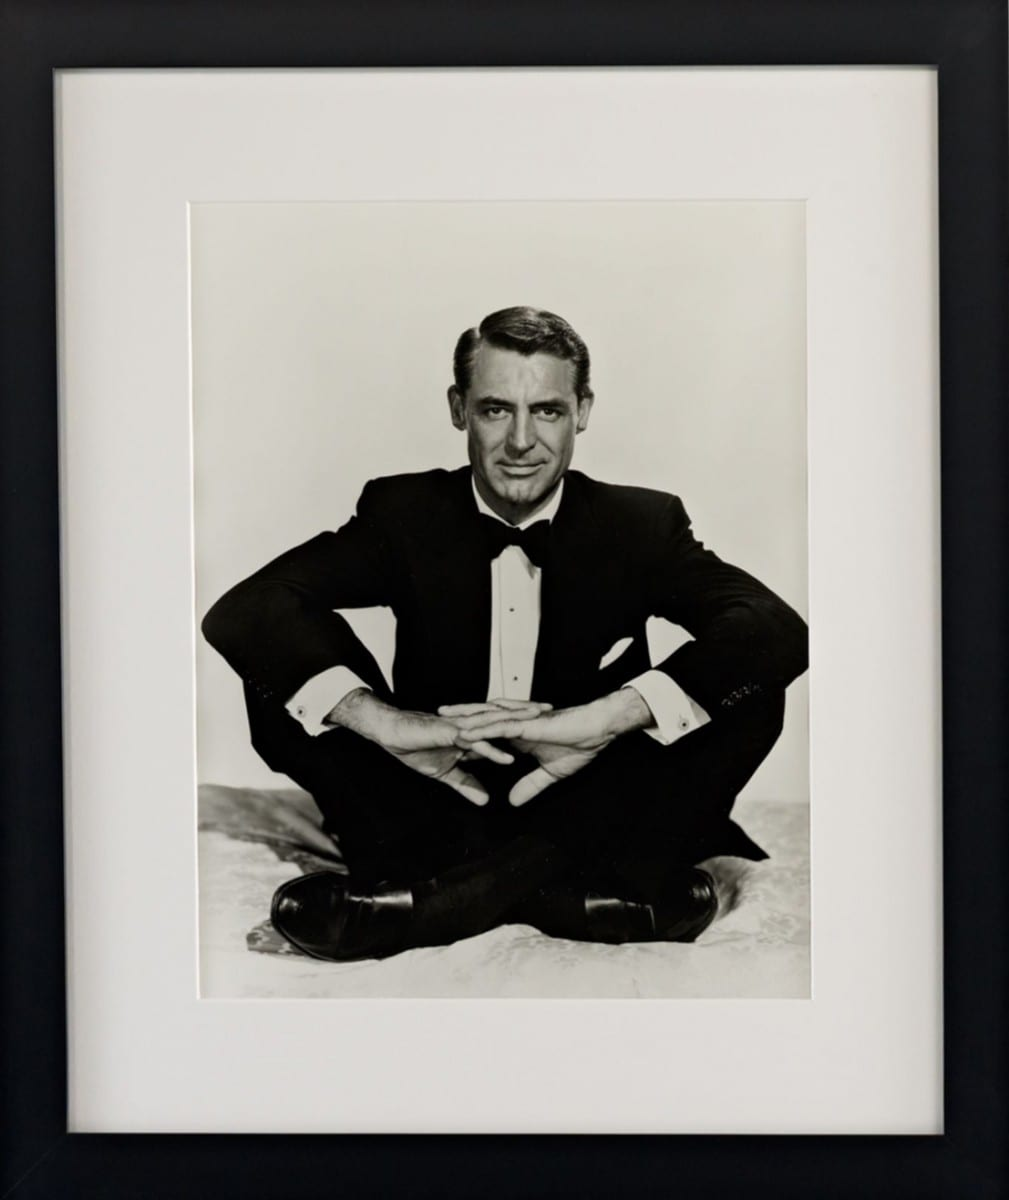 Hulton Archive, Cross-Legged Cary, gelatin silver print on archival fiber paper, 1963 ©Ralph Lauren Home and Getty Images